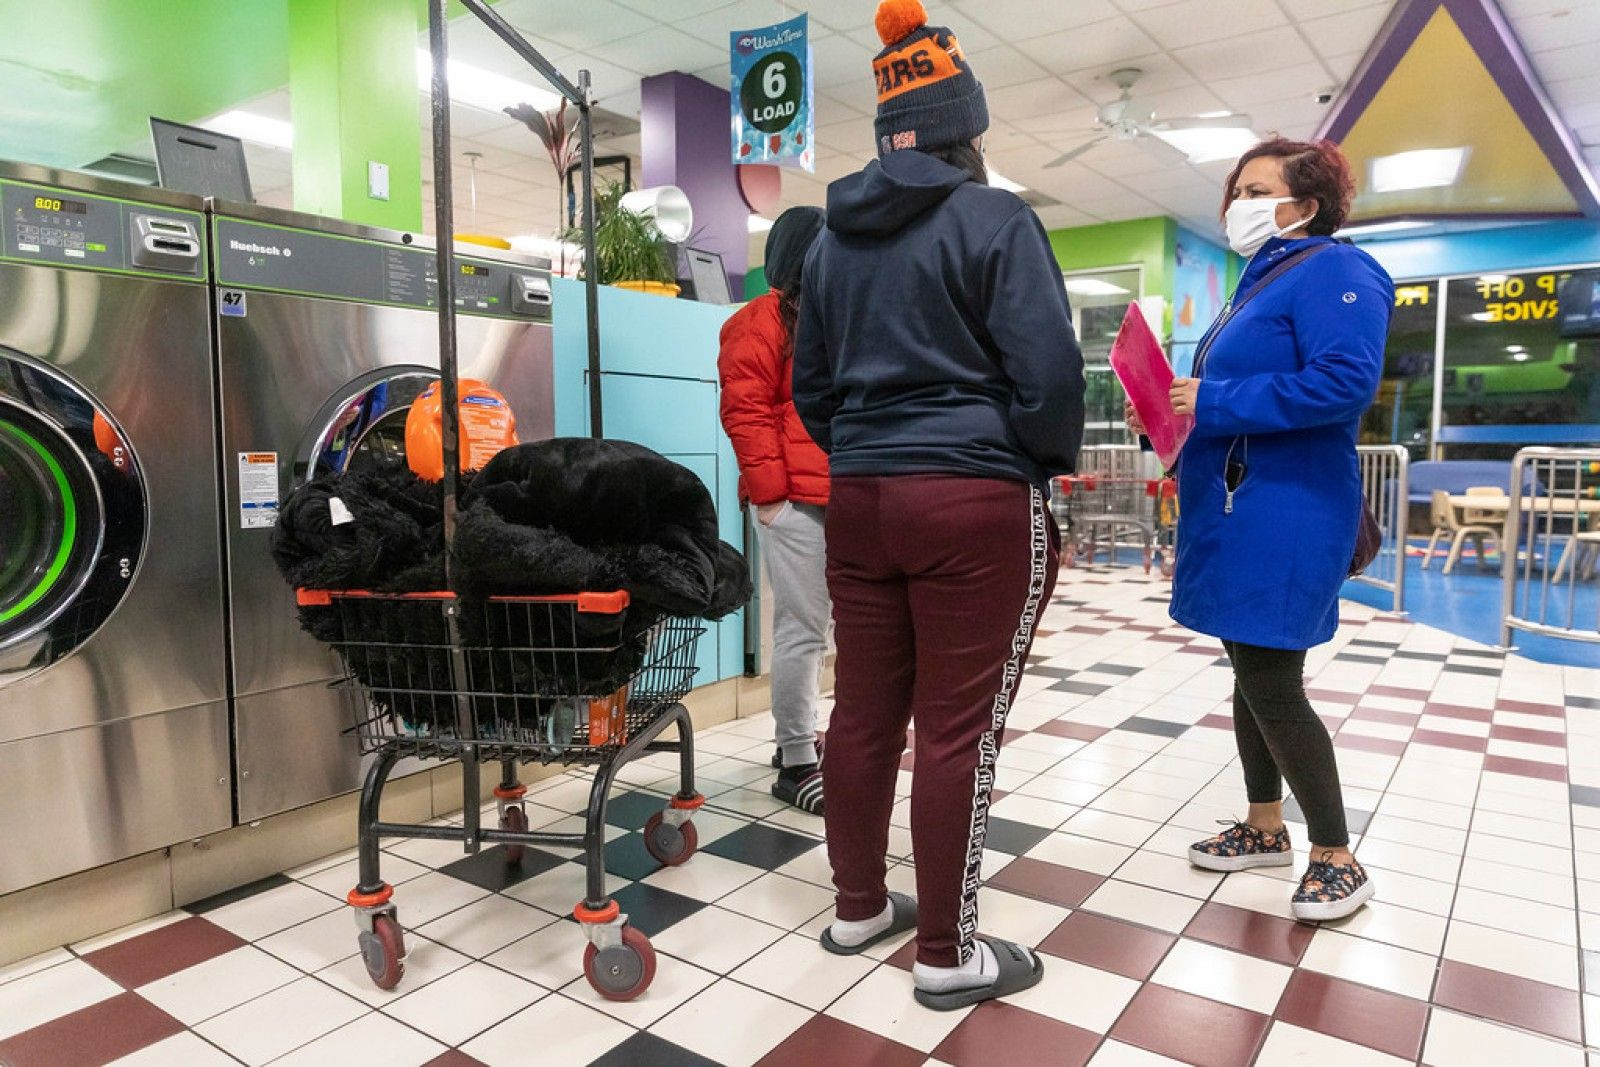 Margarita Sanchez, a promotora de salud — community health worker — with Centro San Bonifacia, conducts a survey about COVID-19 and helps answer questions for people on Jan. 15, 2021, at a laundromat in Belmont Cragin on Chicago's Northwest Side. Manuel Martinez / WBEZ News.